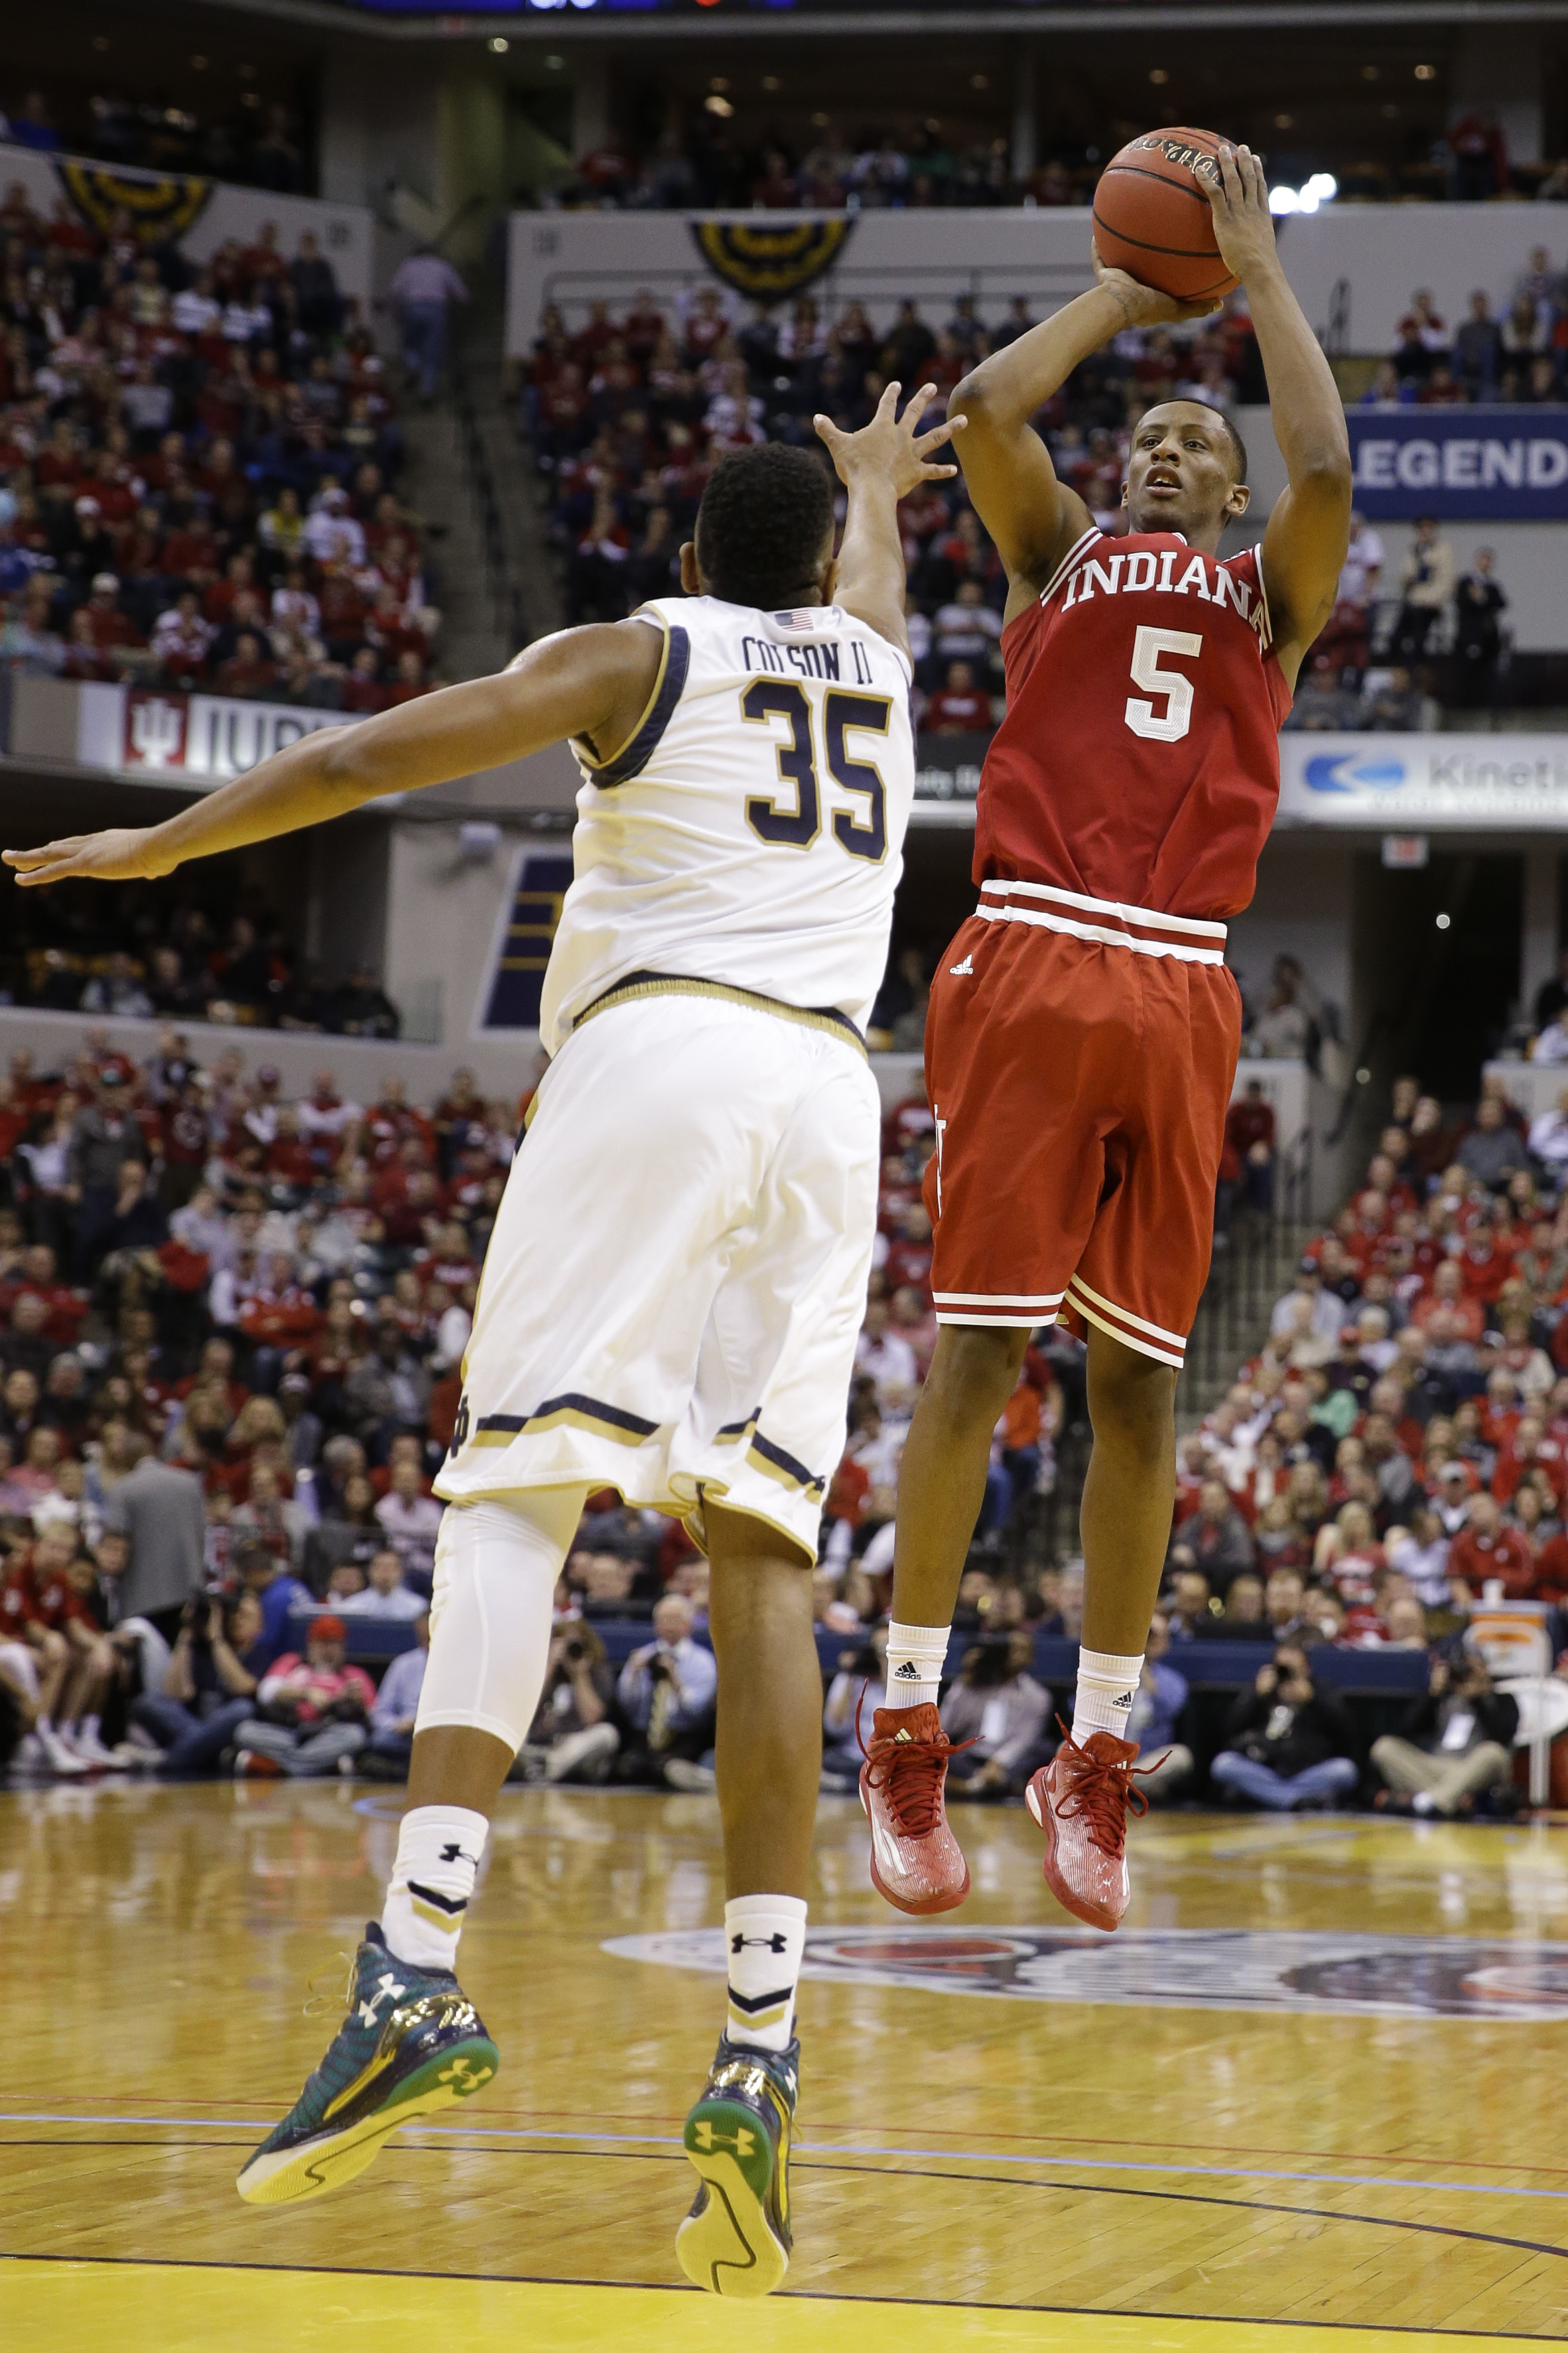 Indiana forward Troy Williams (5) shoots over Notre Dame forward Bonzie Colson (35) in the first half of an NCAA college basketball game in Indianapolis, Saturday, Dec. 19, 2015. Indiana defeated Notre Dame 80-73. (AP Photo/Michael Conroy)